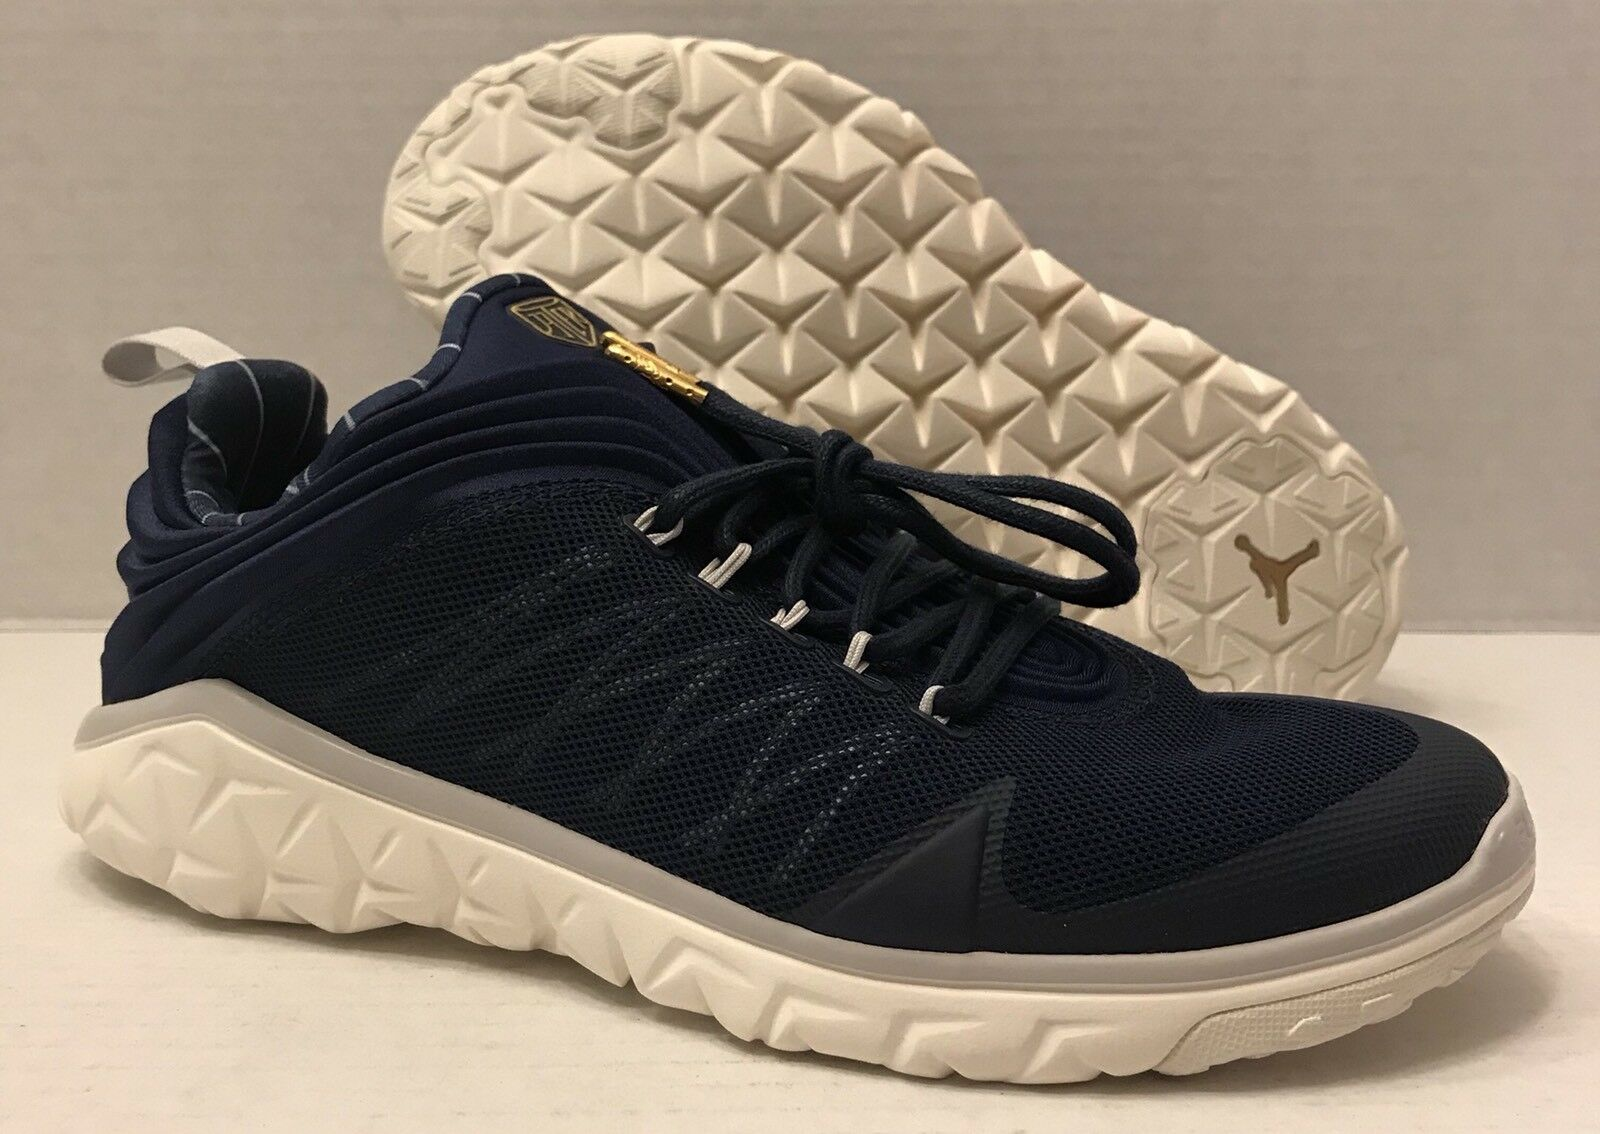 NIKE JORDAN FLIGHT FLEX TRAINER  DEREK JETER  715855-402 navy (MEN'S 10) NO BOX